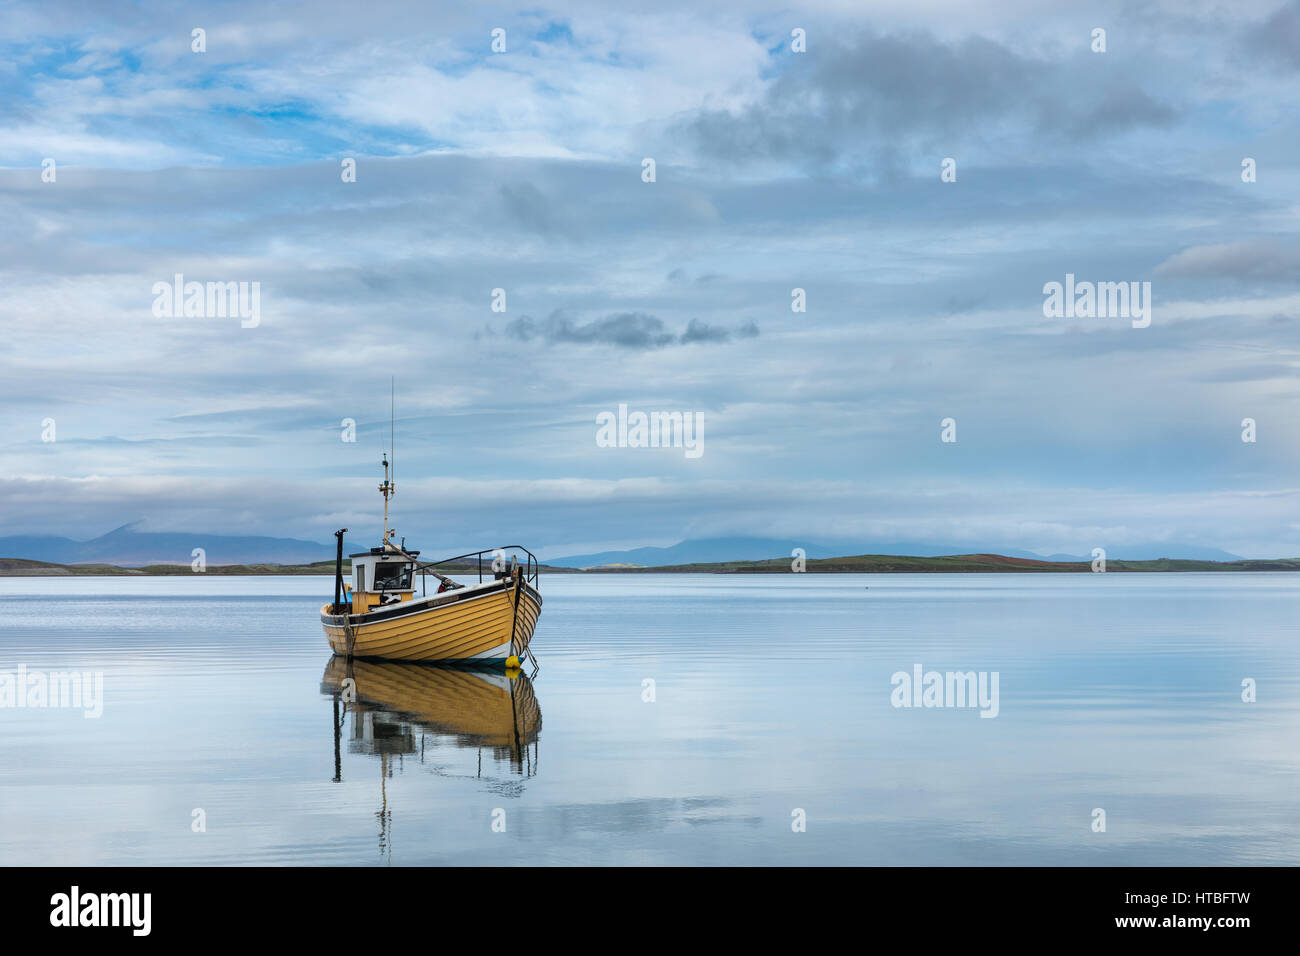 A fishing boat in Clew Bay, Co Mayo, Ireland - Stock Image